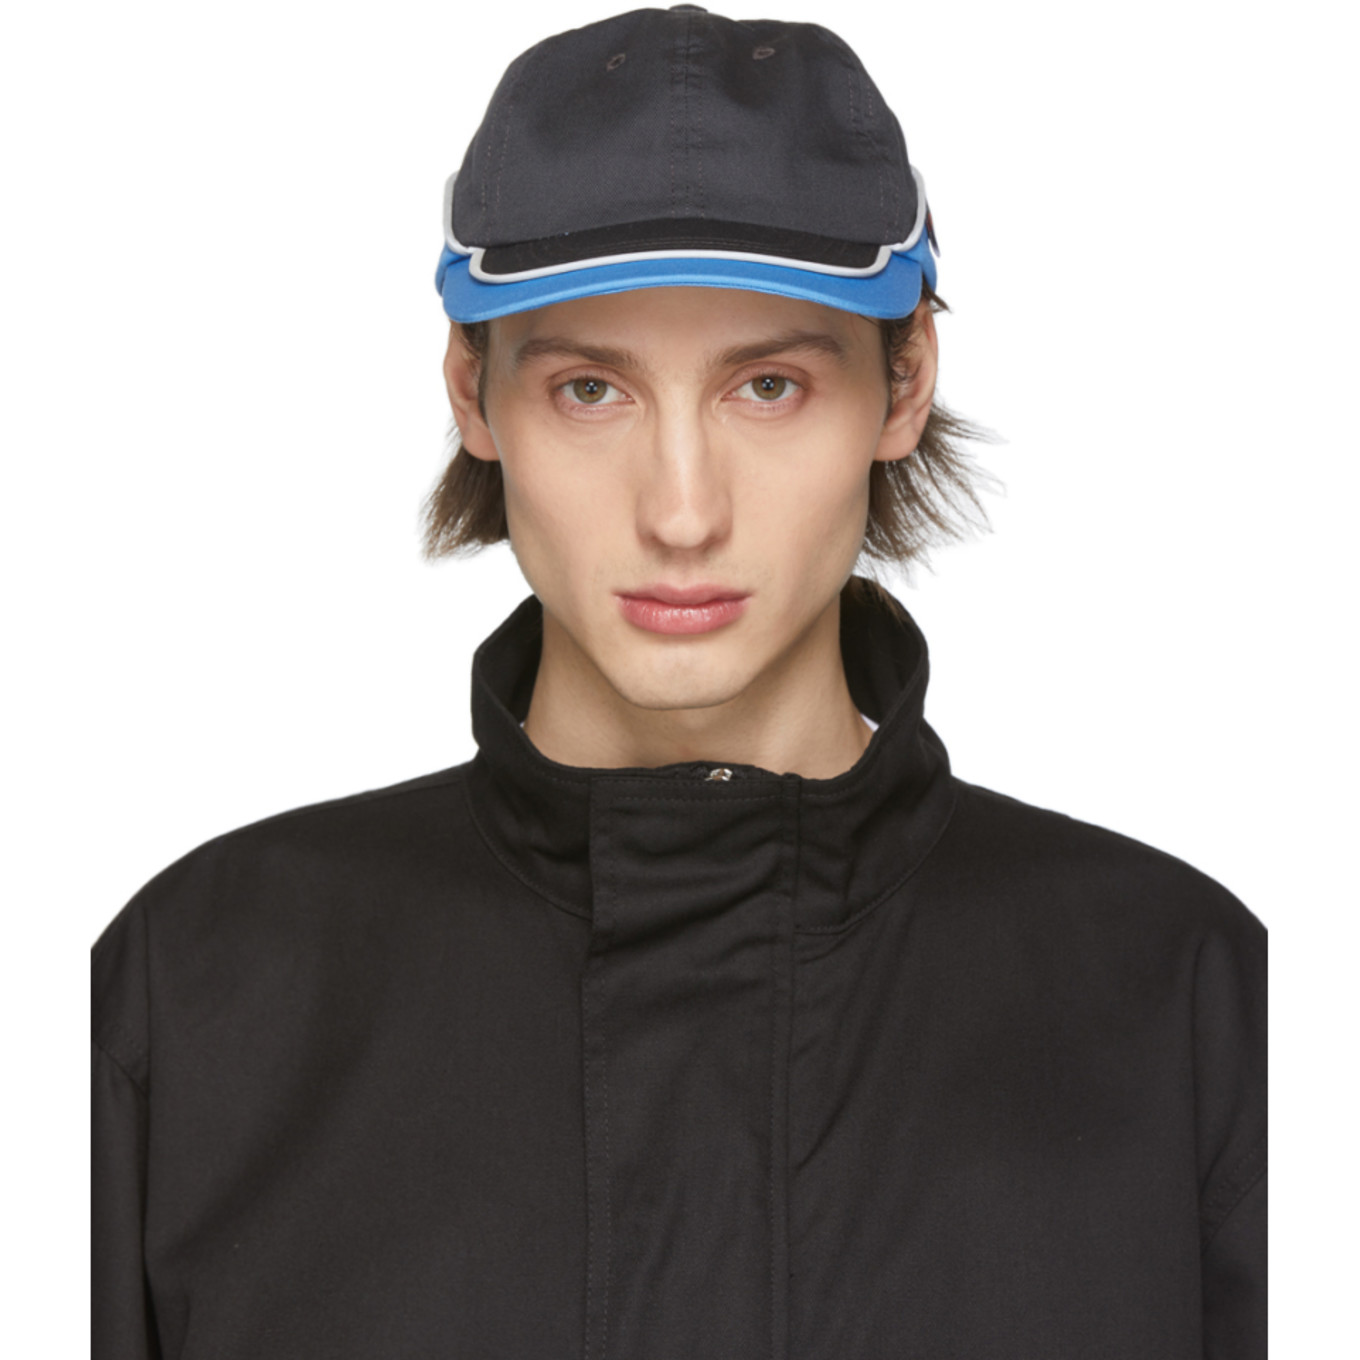 Blue & Grey Worker Cap by Affix